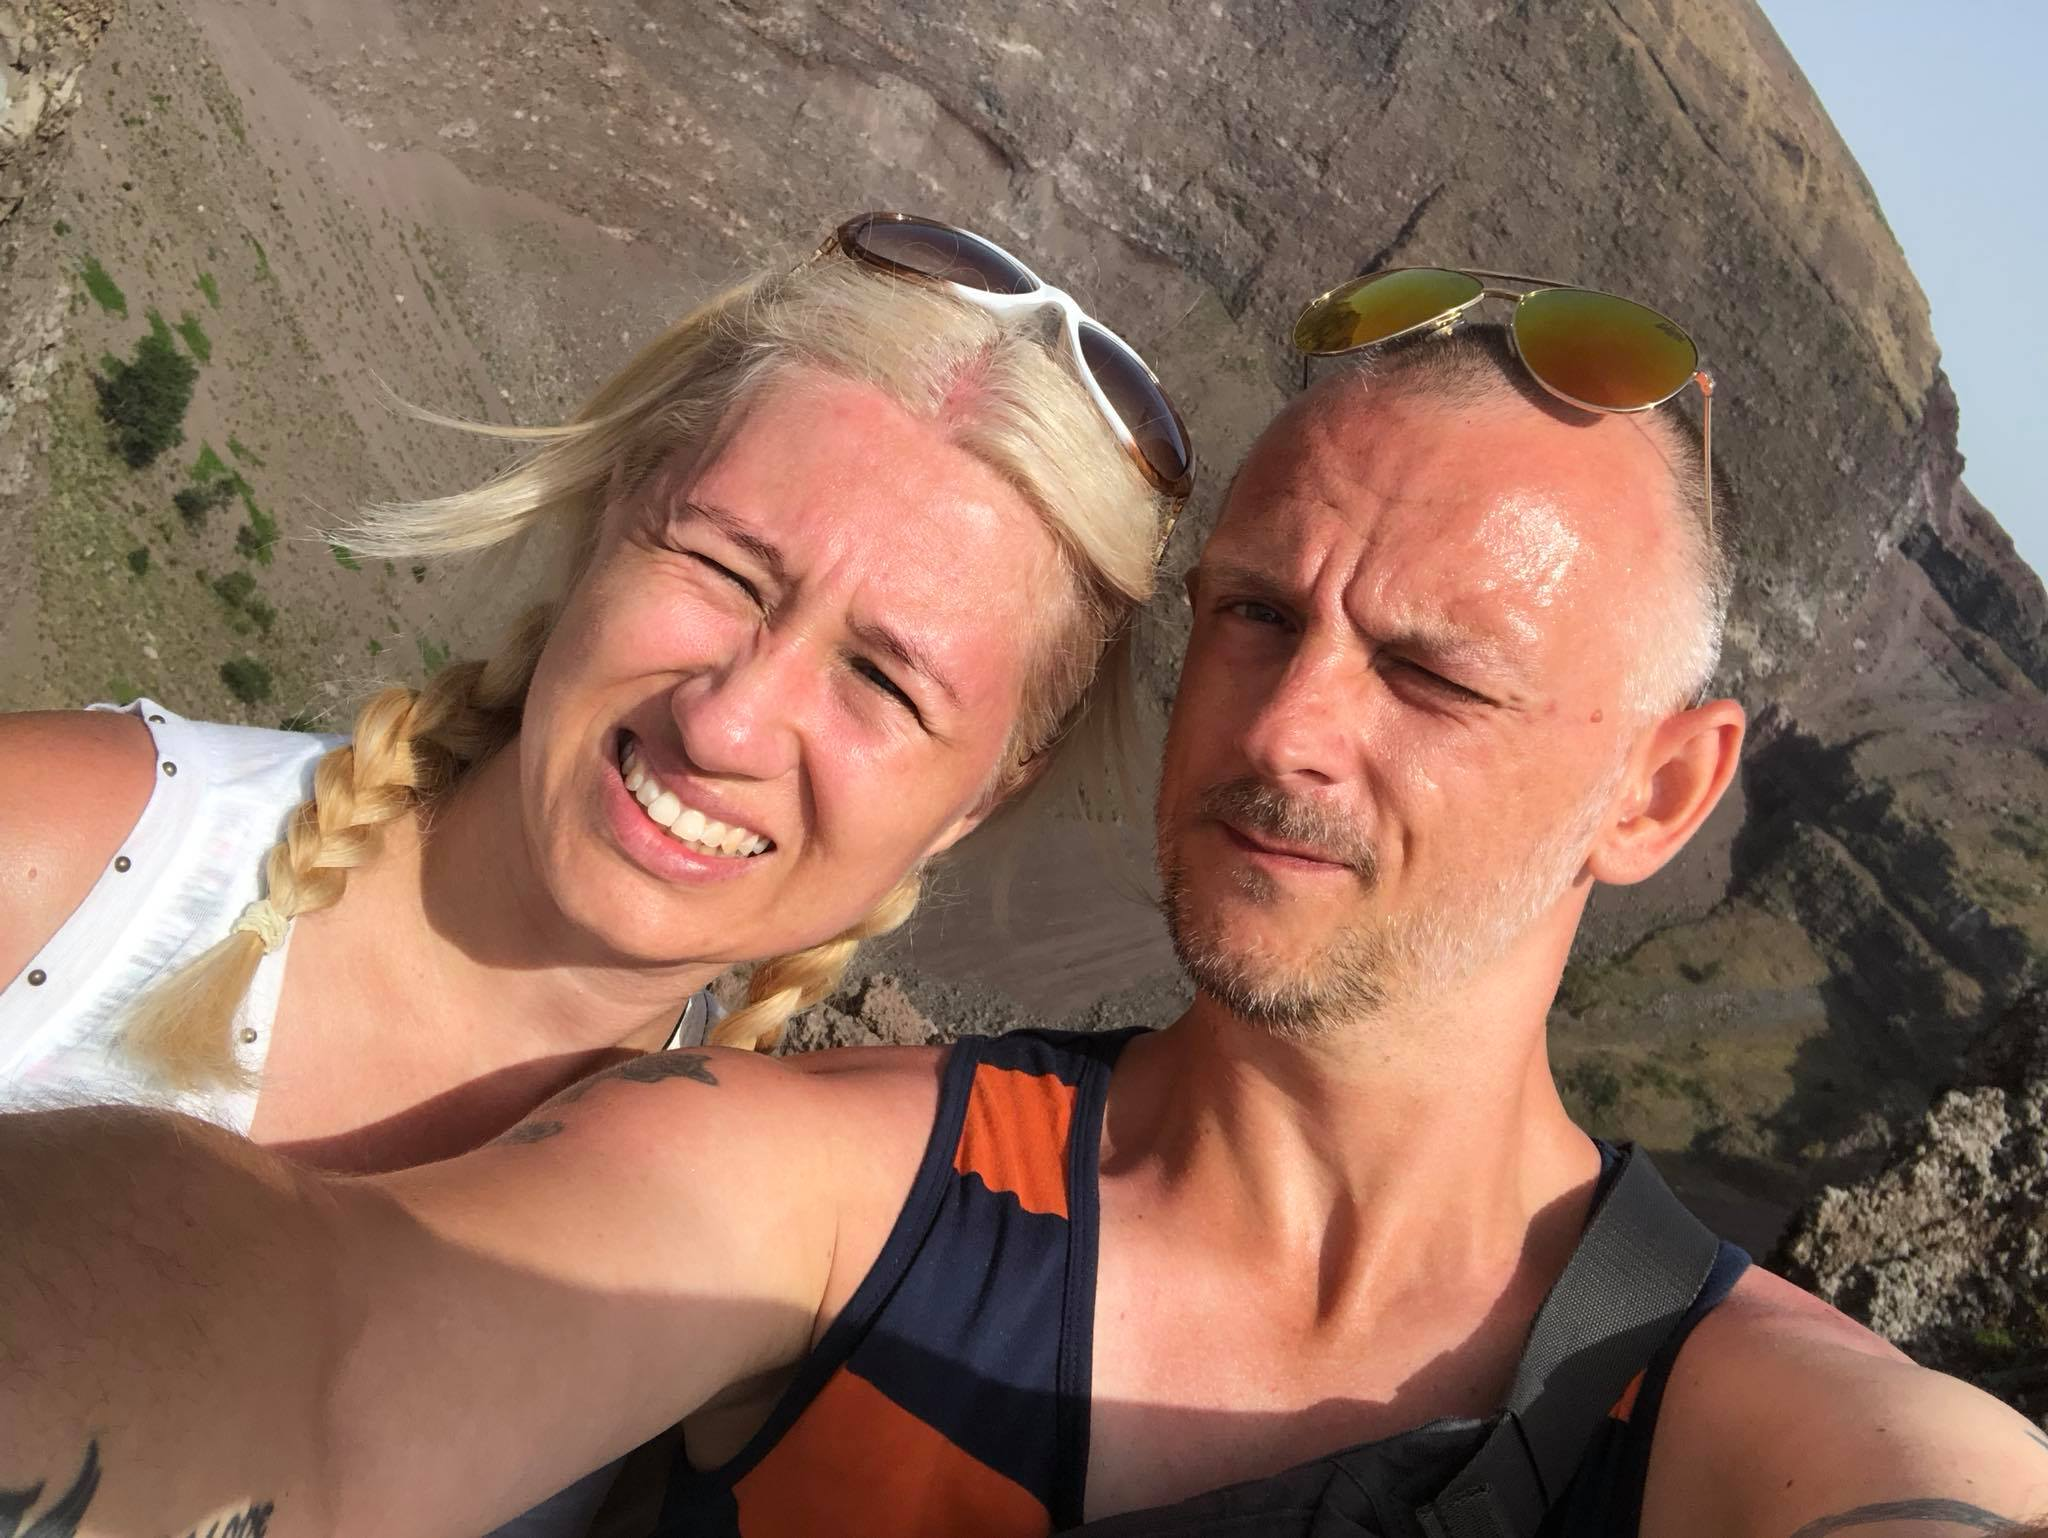 Jason & Vicky, At The Top Of Mount Vesuvius